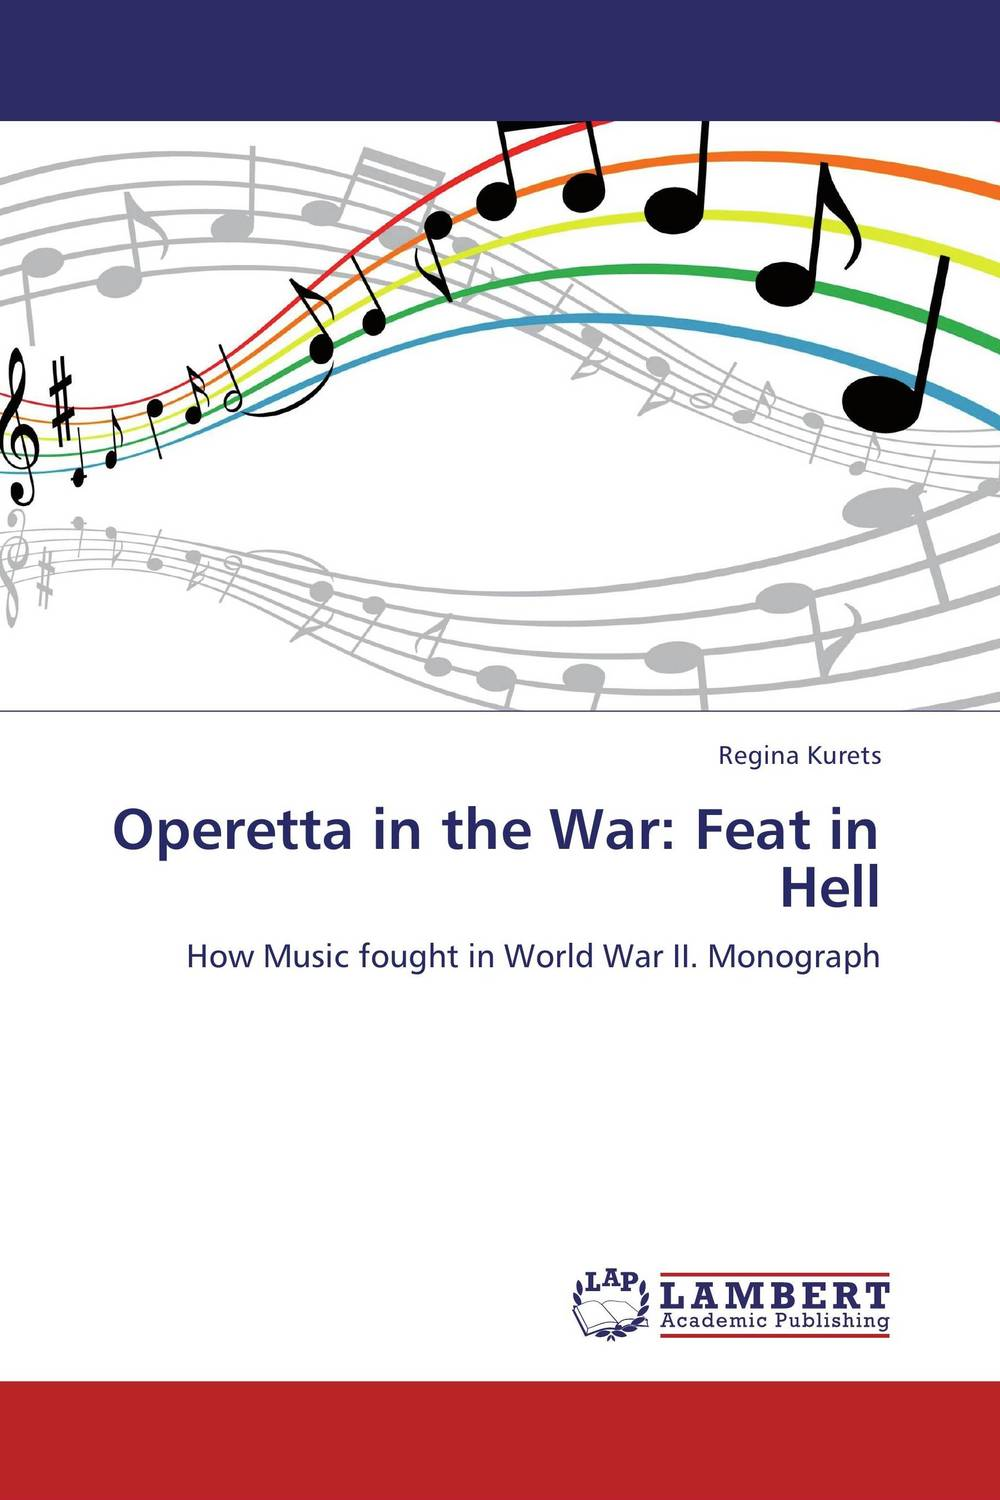 Operetta in the War: Feat in Hell victorian america and the civil war